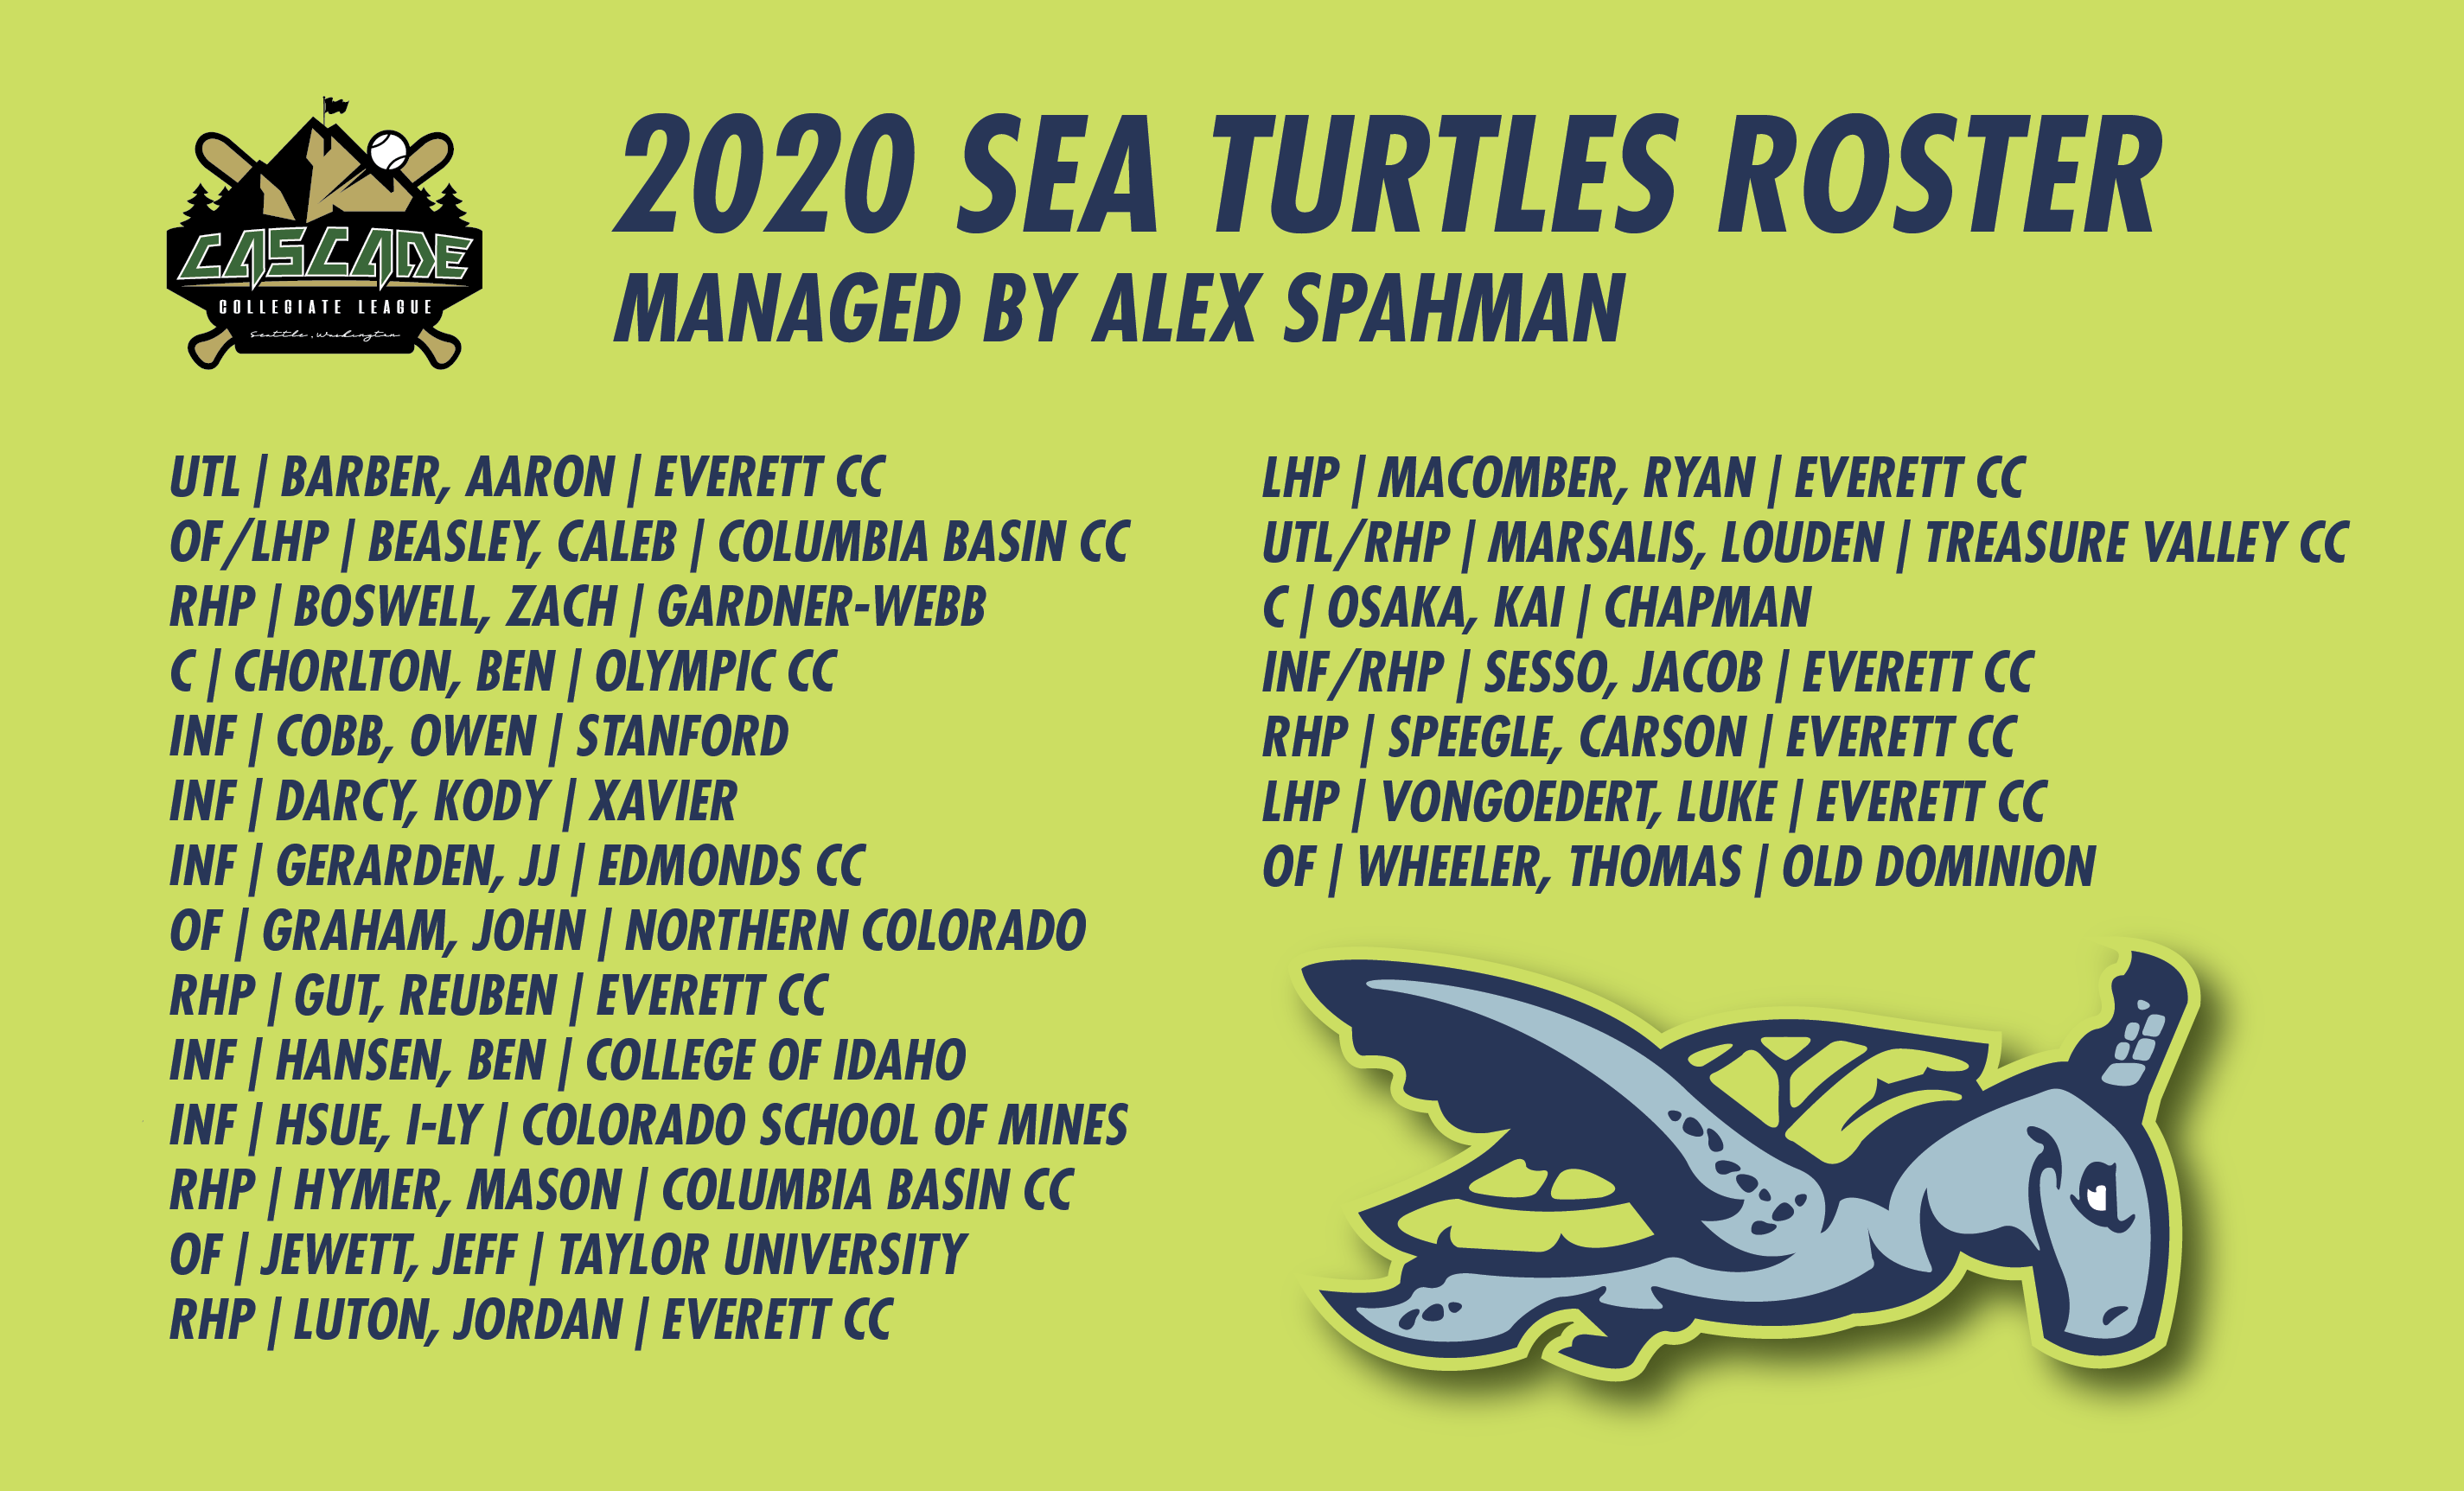 2020 SEA TURTLES ROSTER